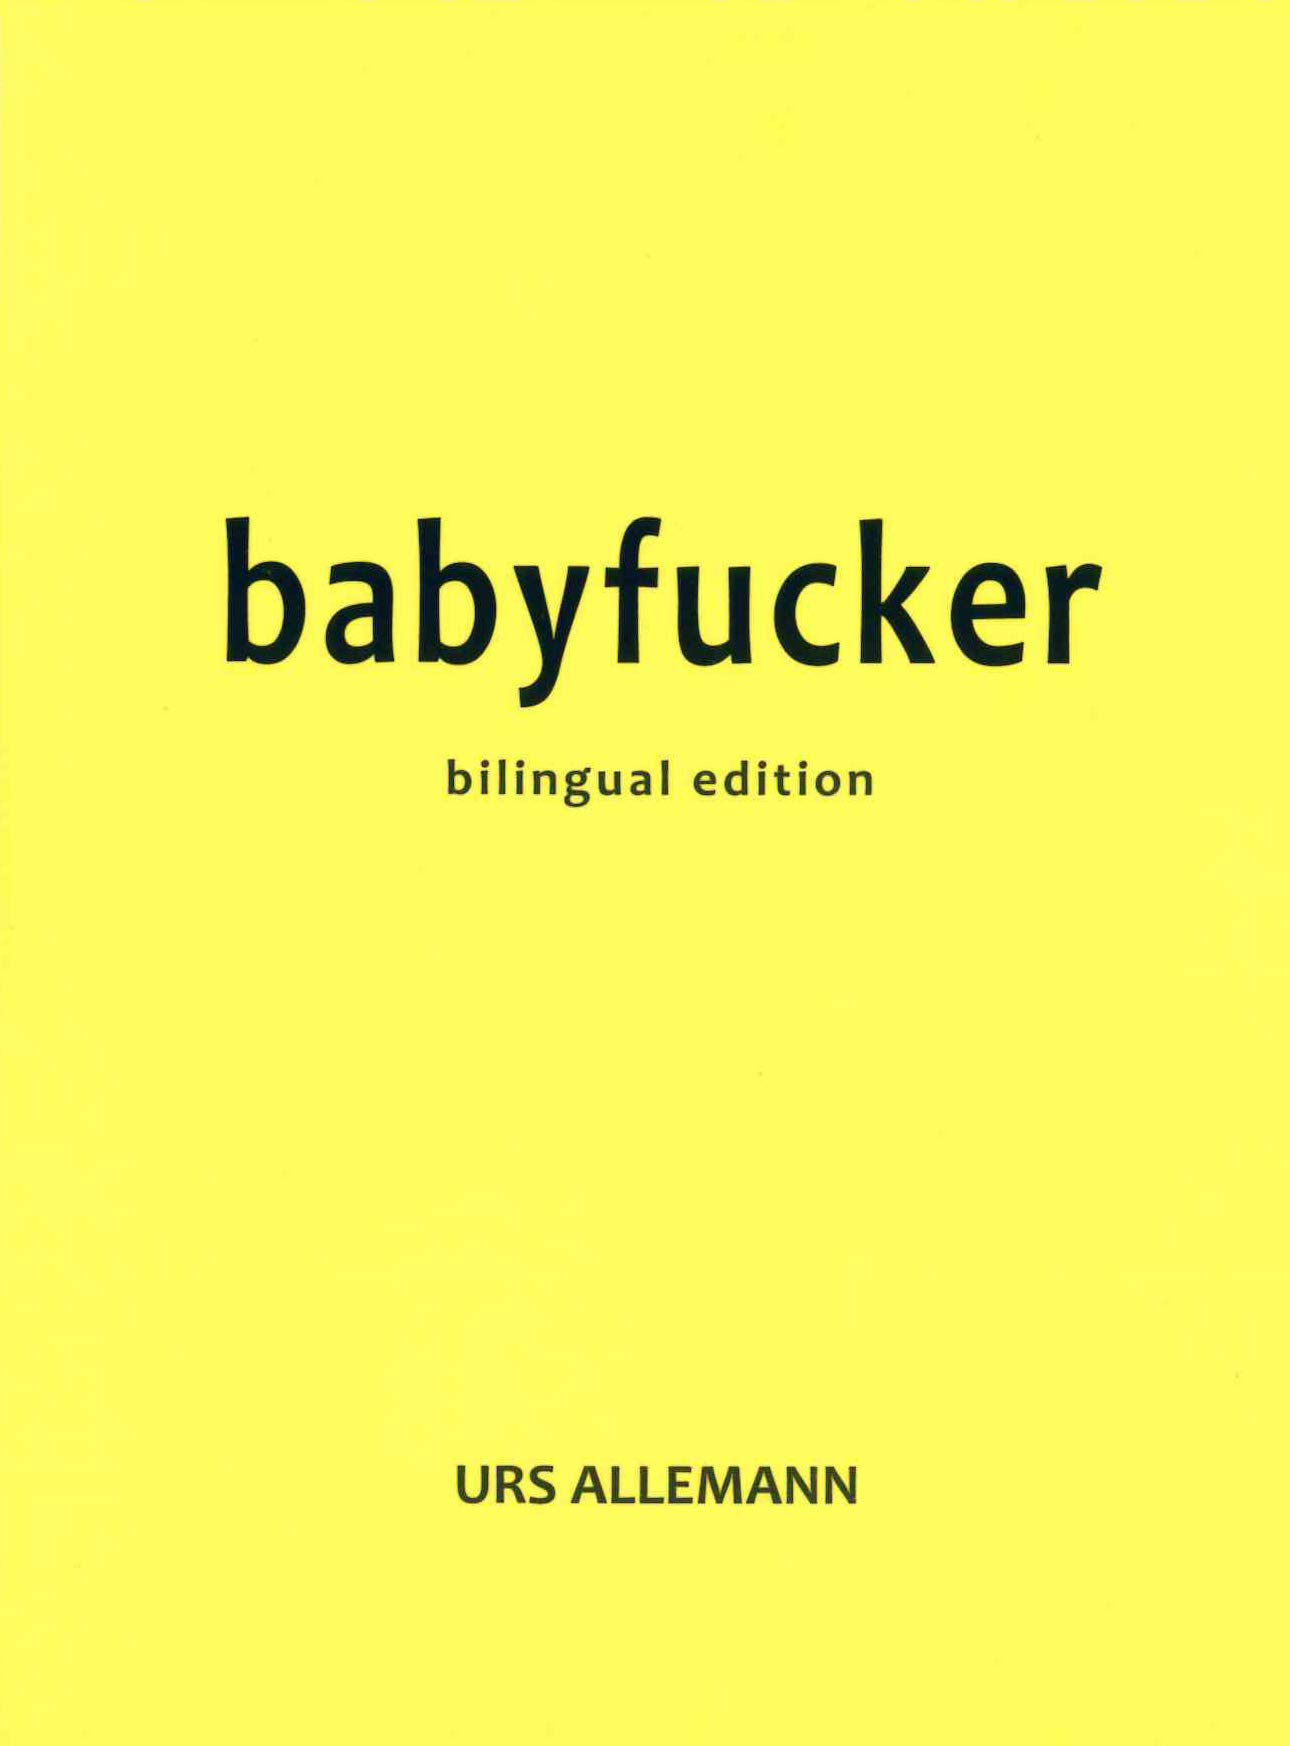 Babyfucker | Urs Allemann | Les Figues Press